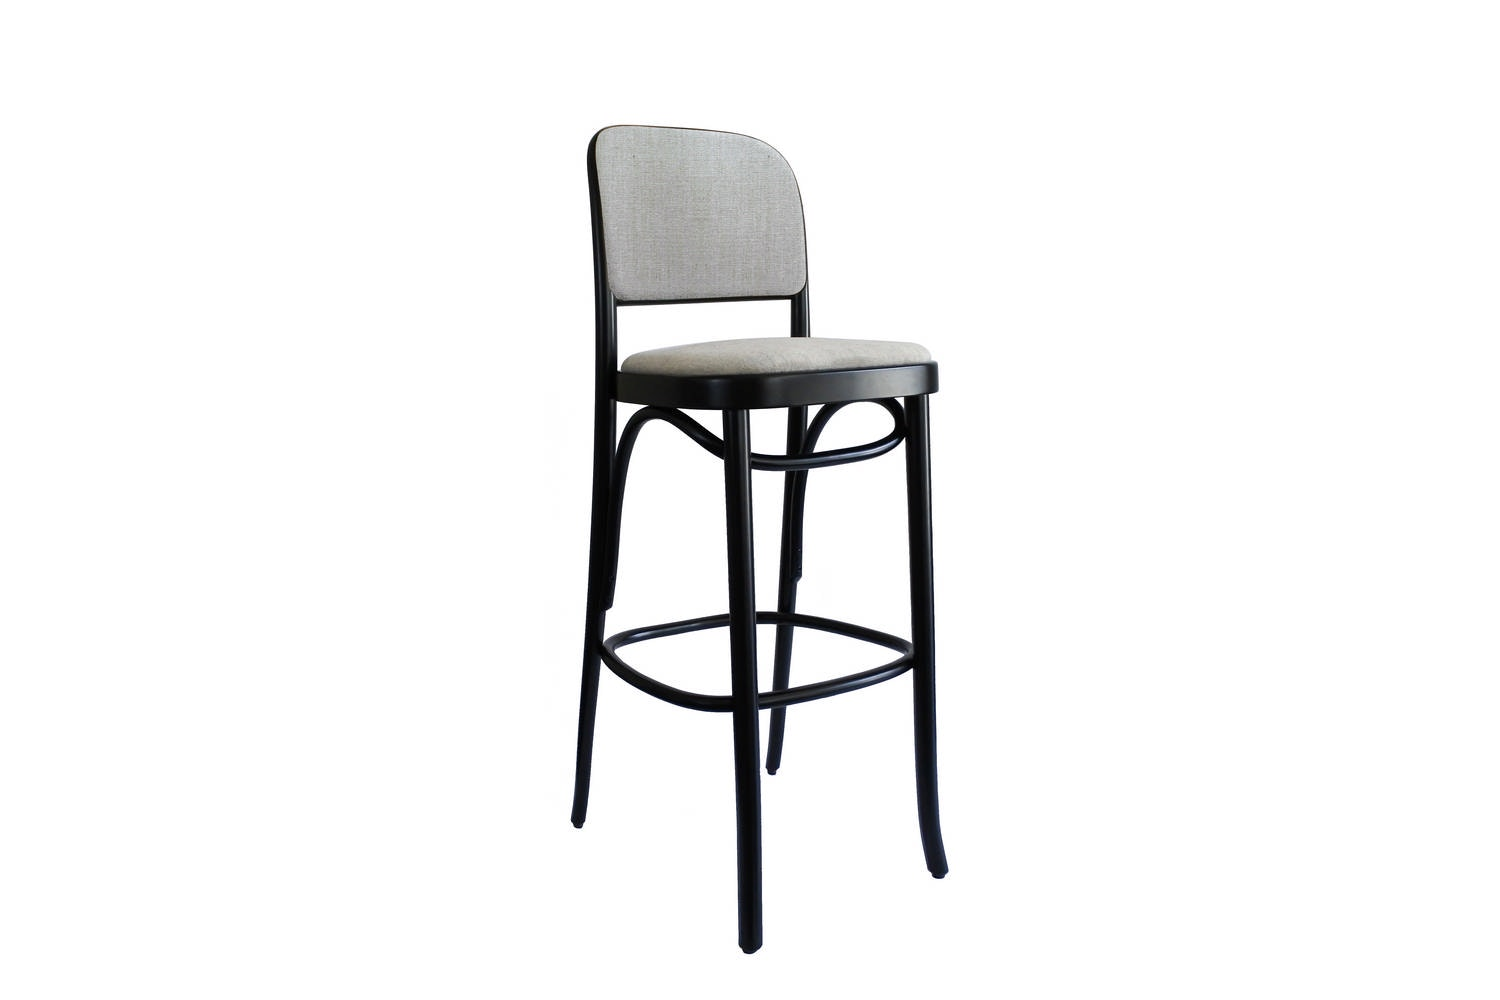 N. 811 Hocker Stool by Josef Hoffmann for Gebruder Thonet Vienna GmbH